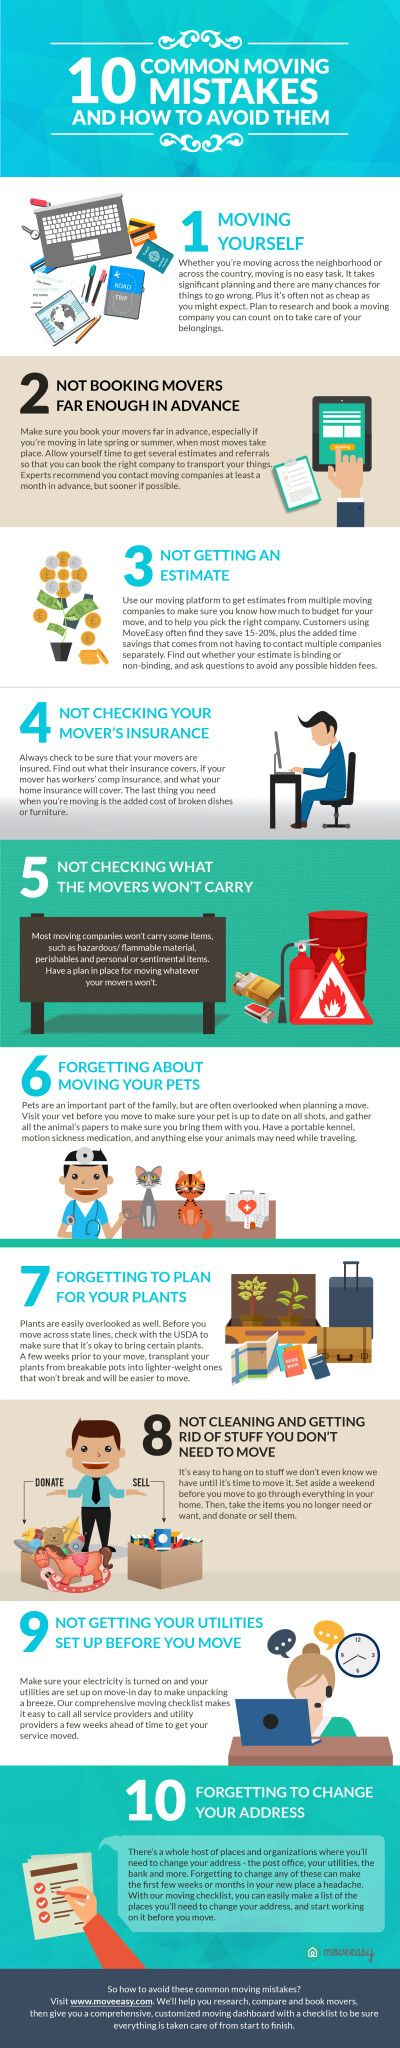 10 Common Moving Mistakes .. and How to Avoid Them.  #moving #movingtips